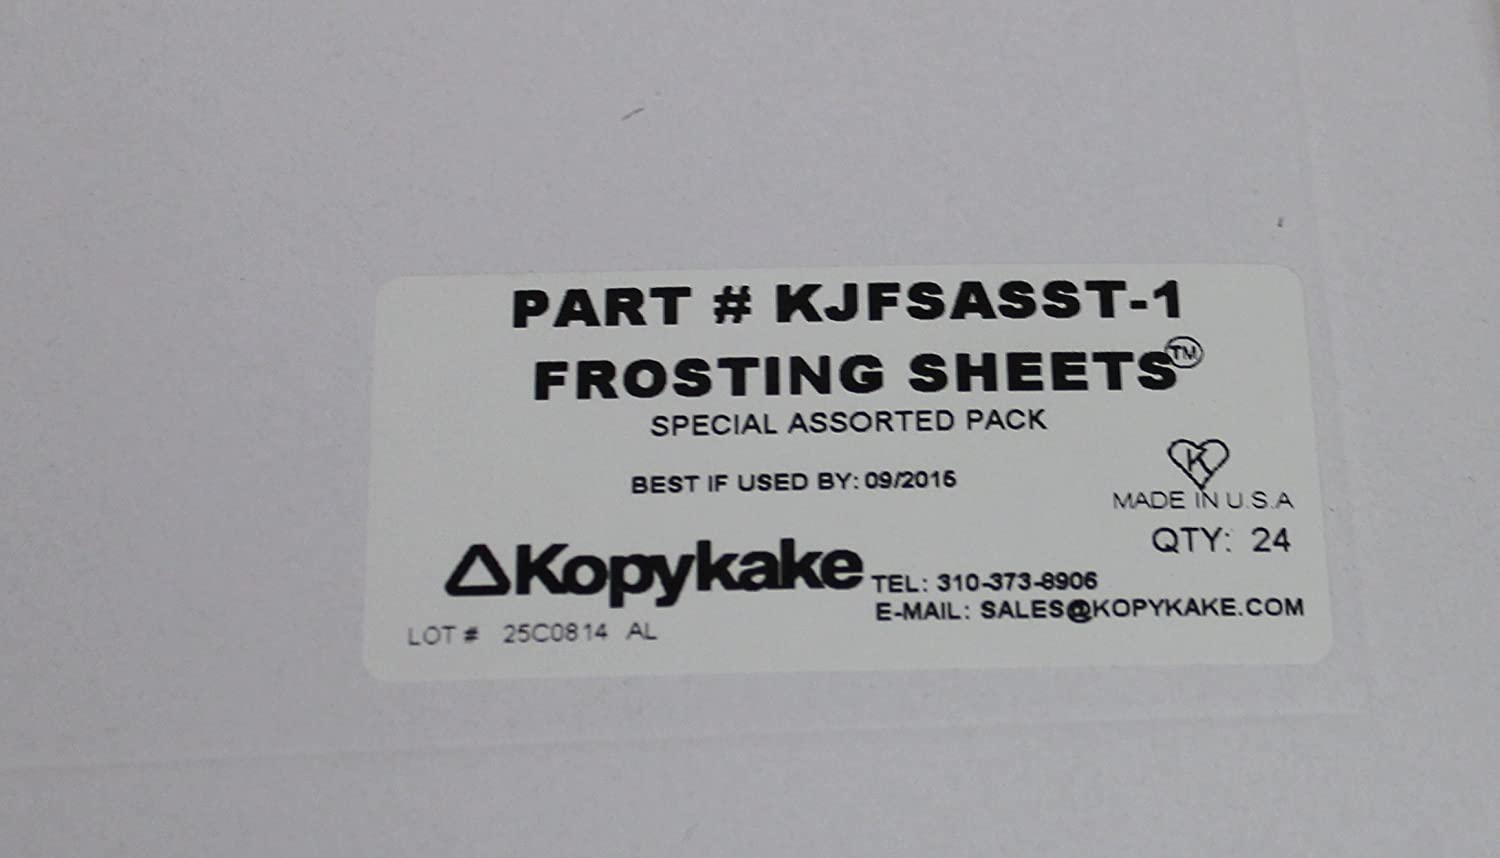 Kopykake Frosting Sheets Assorted